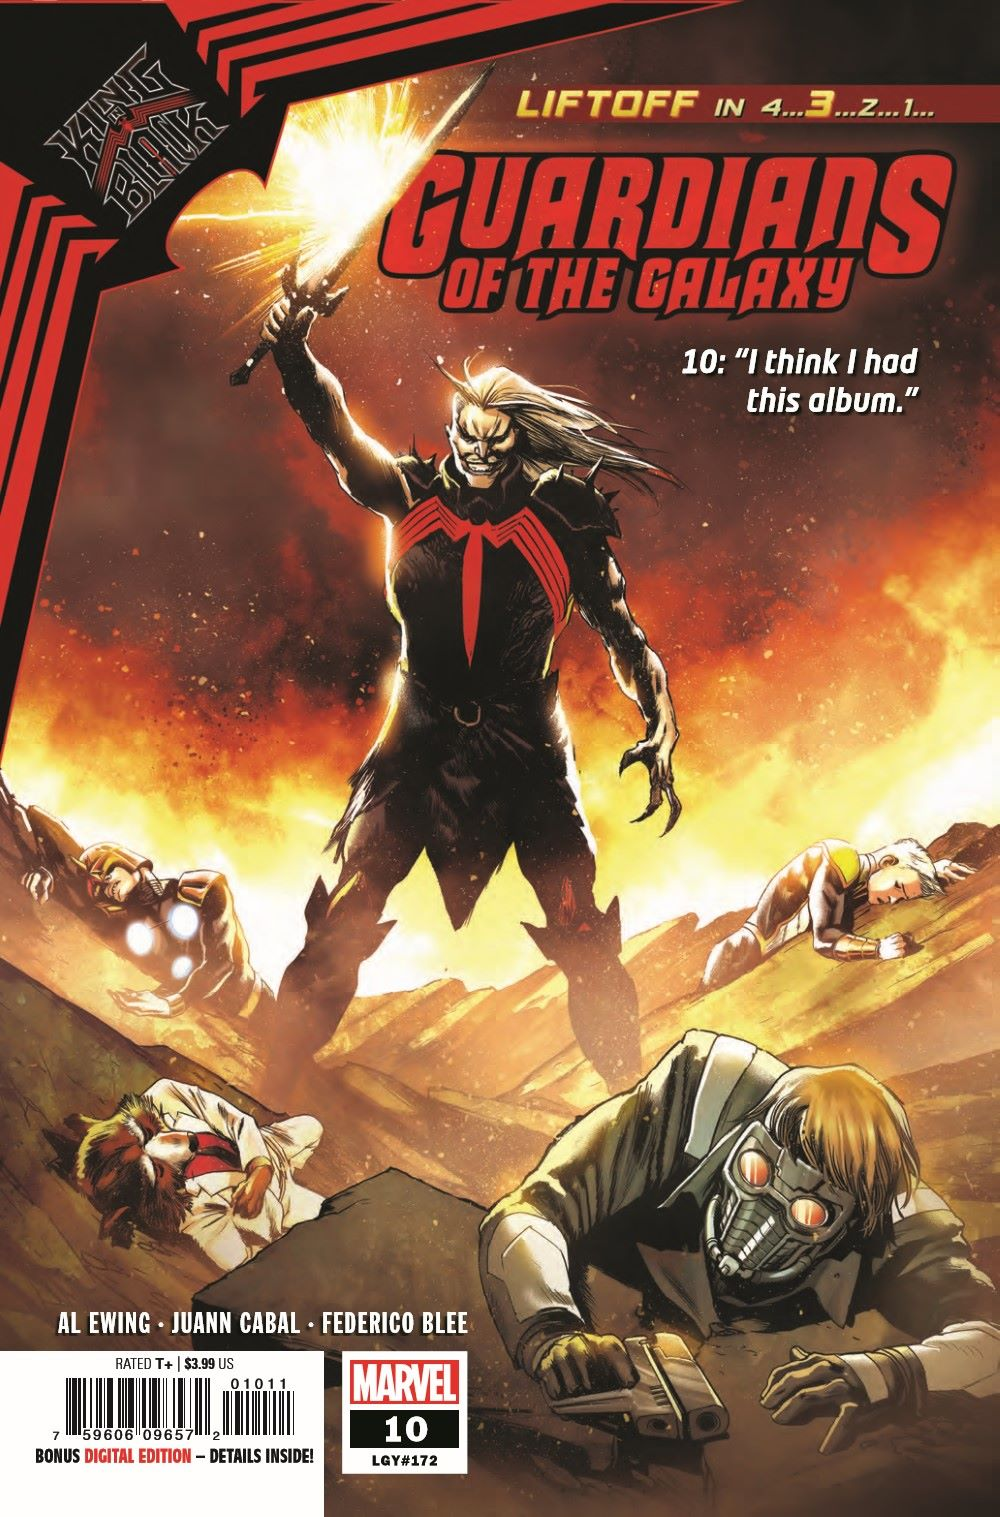 GARGAL2020010_Previews-1-1 ComicList Previews: GUARDIANS OF THE GALAXY #10